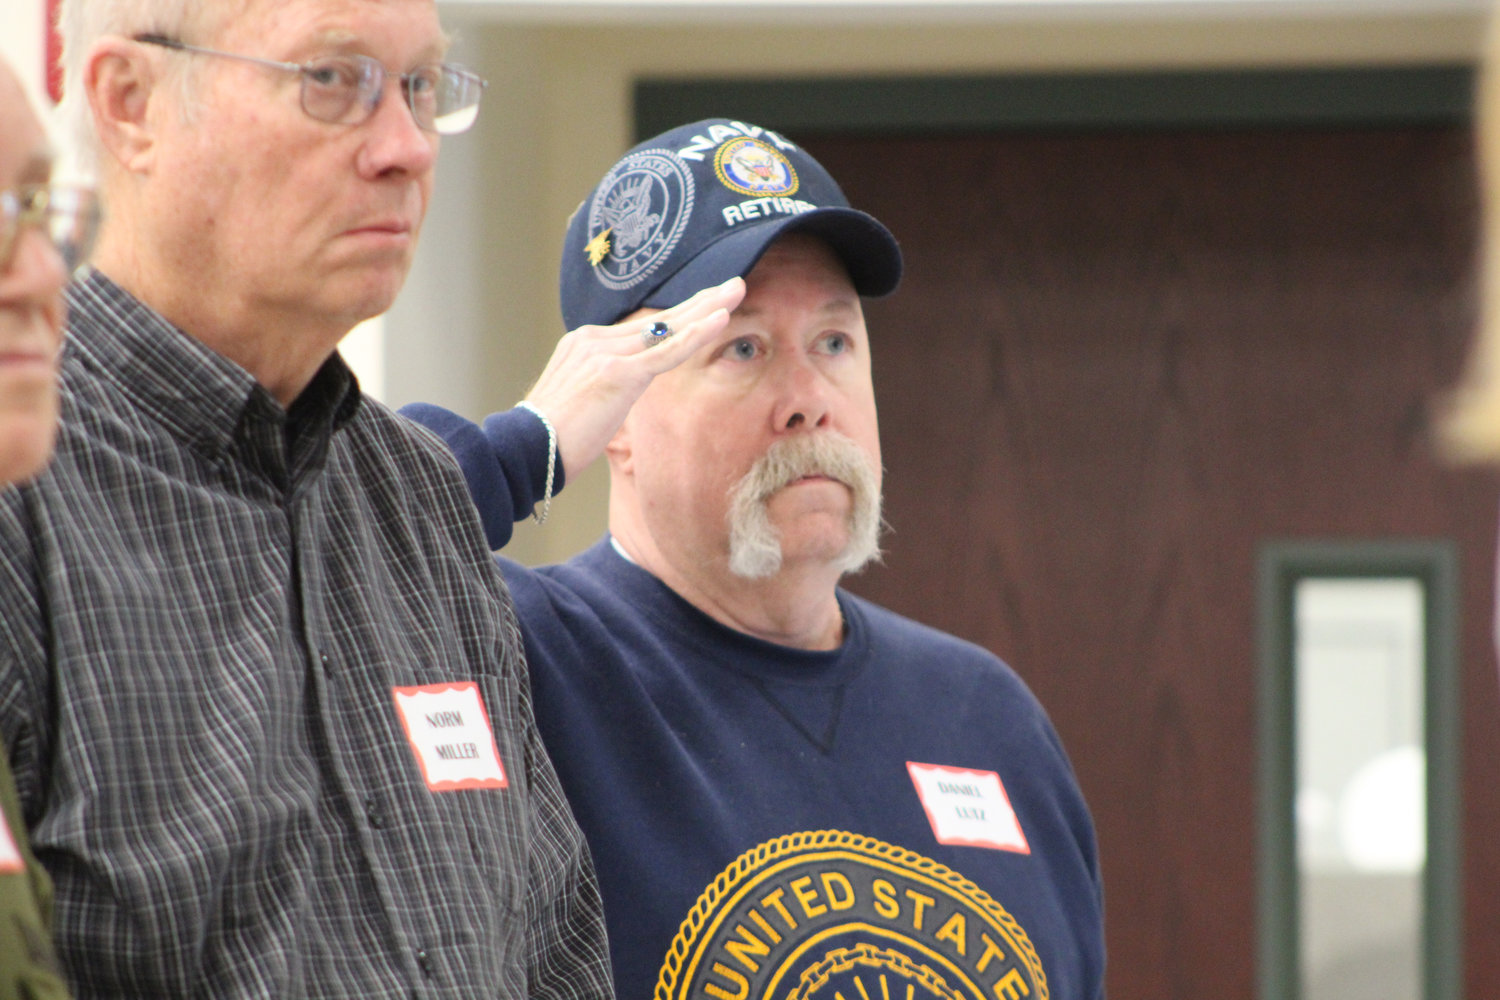 Retired Navy Daniel Lutz salutes while the Star Spangled Banner is performed during Rep. Tom Mehaffie's Veterans Breakfast at the Lower Swatara Fire Hall Nov. 8.